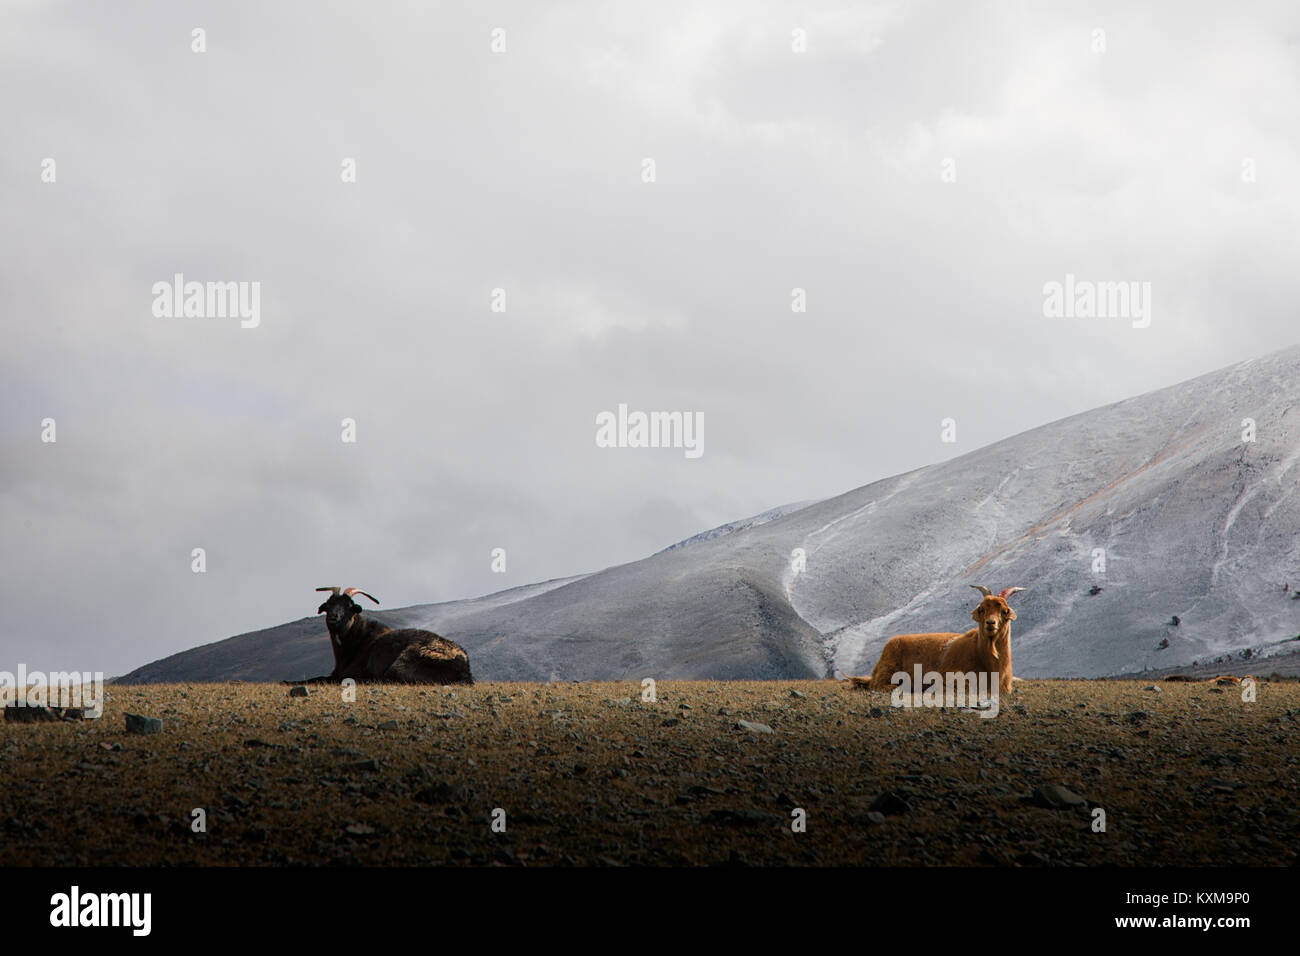 Two goats resting black and brown goats lying winter Mongolia snowy mountains cloudy day - Stock Image